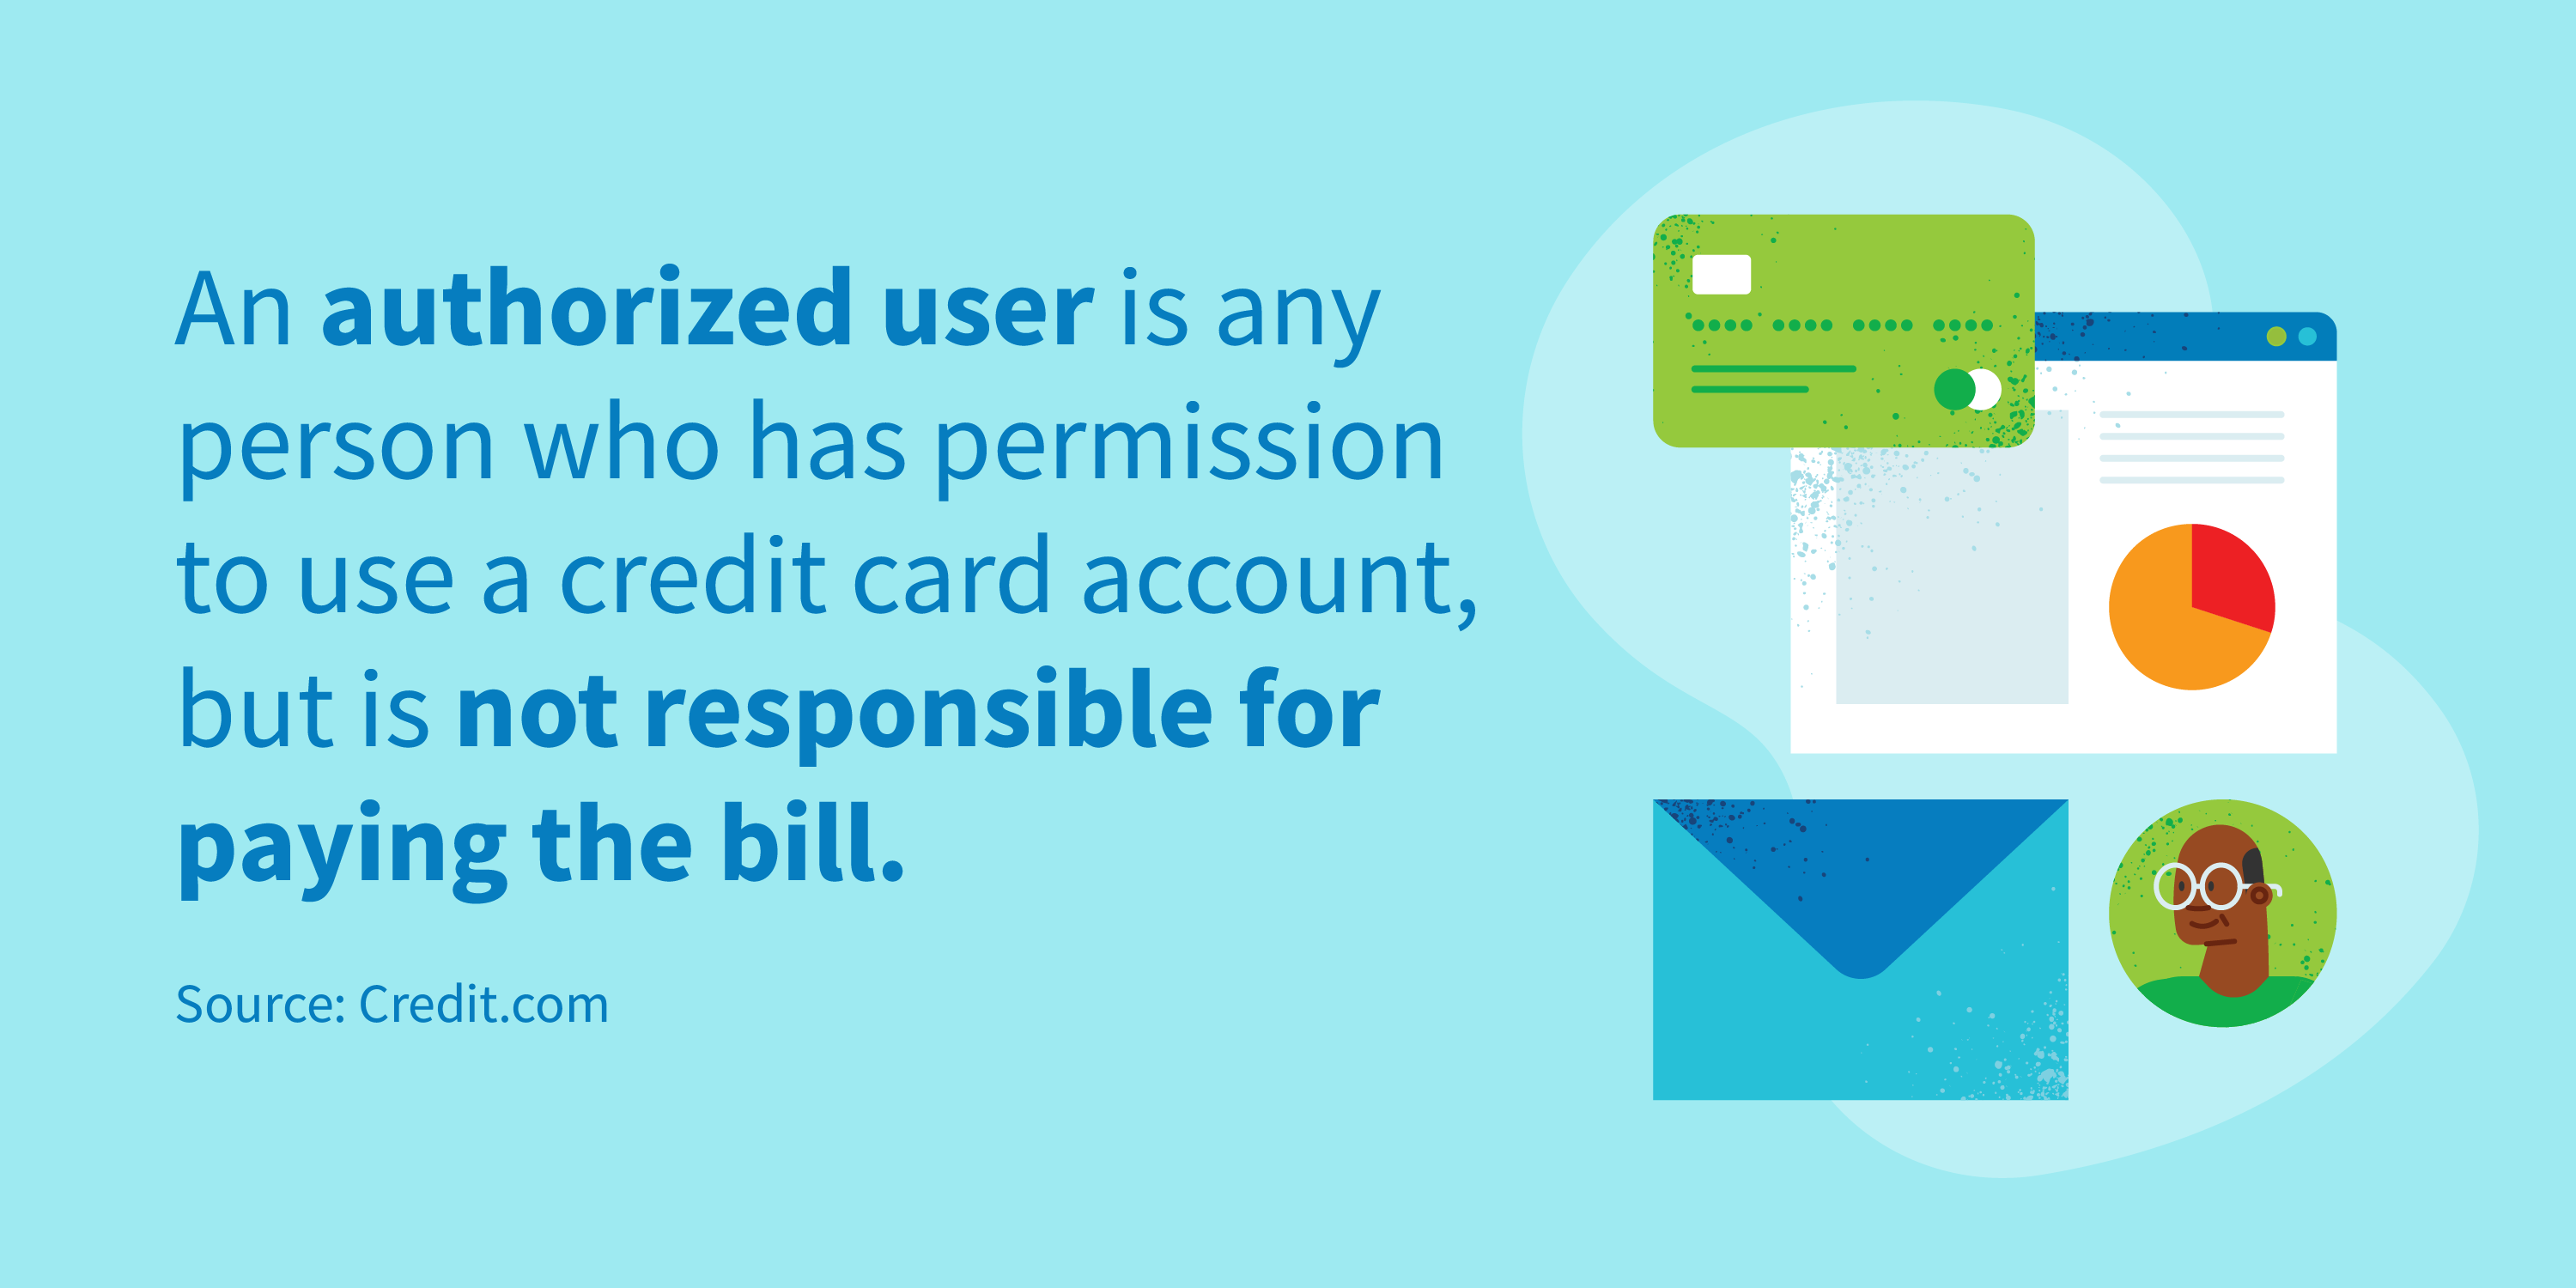 An authorized user is any person who has permission to use a credit card account, but is not responsible for paying the bill.